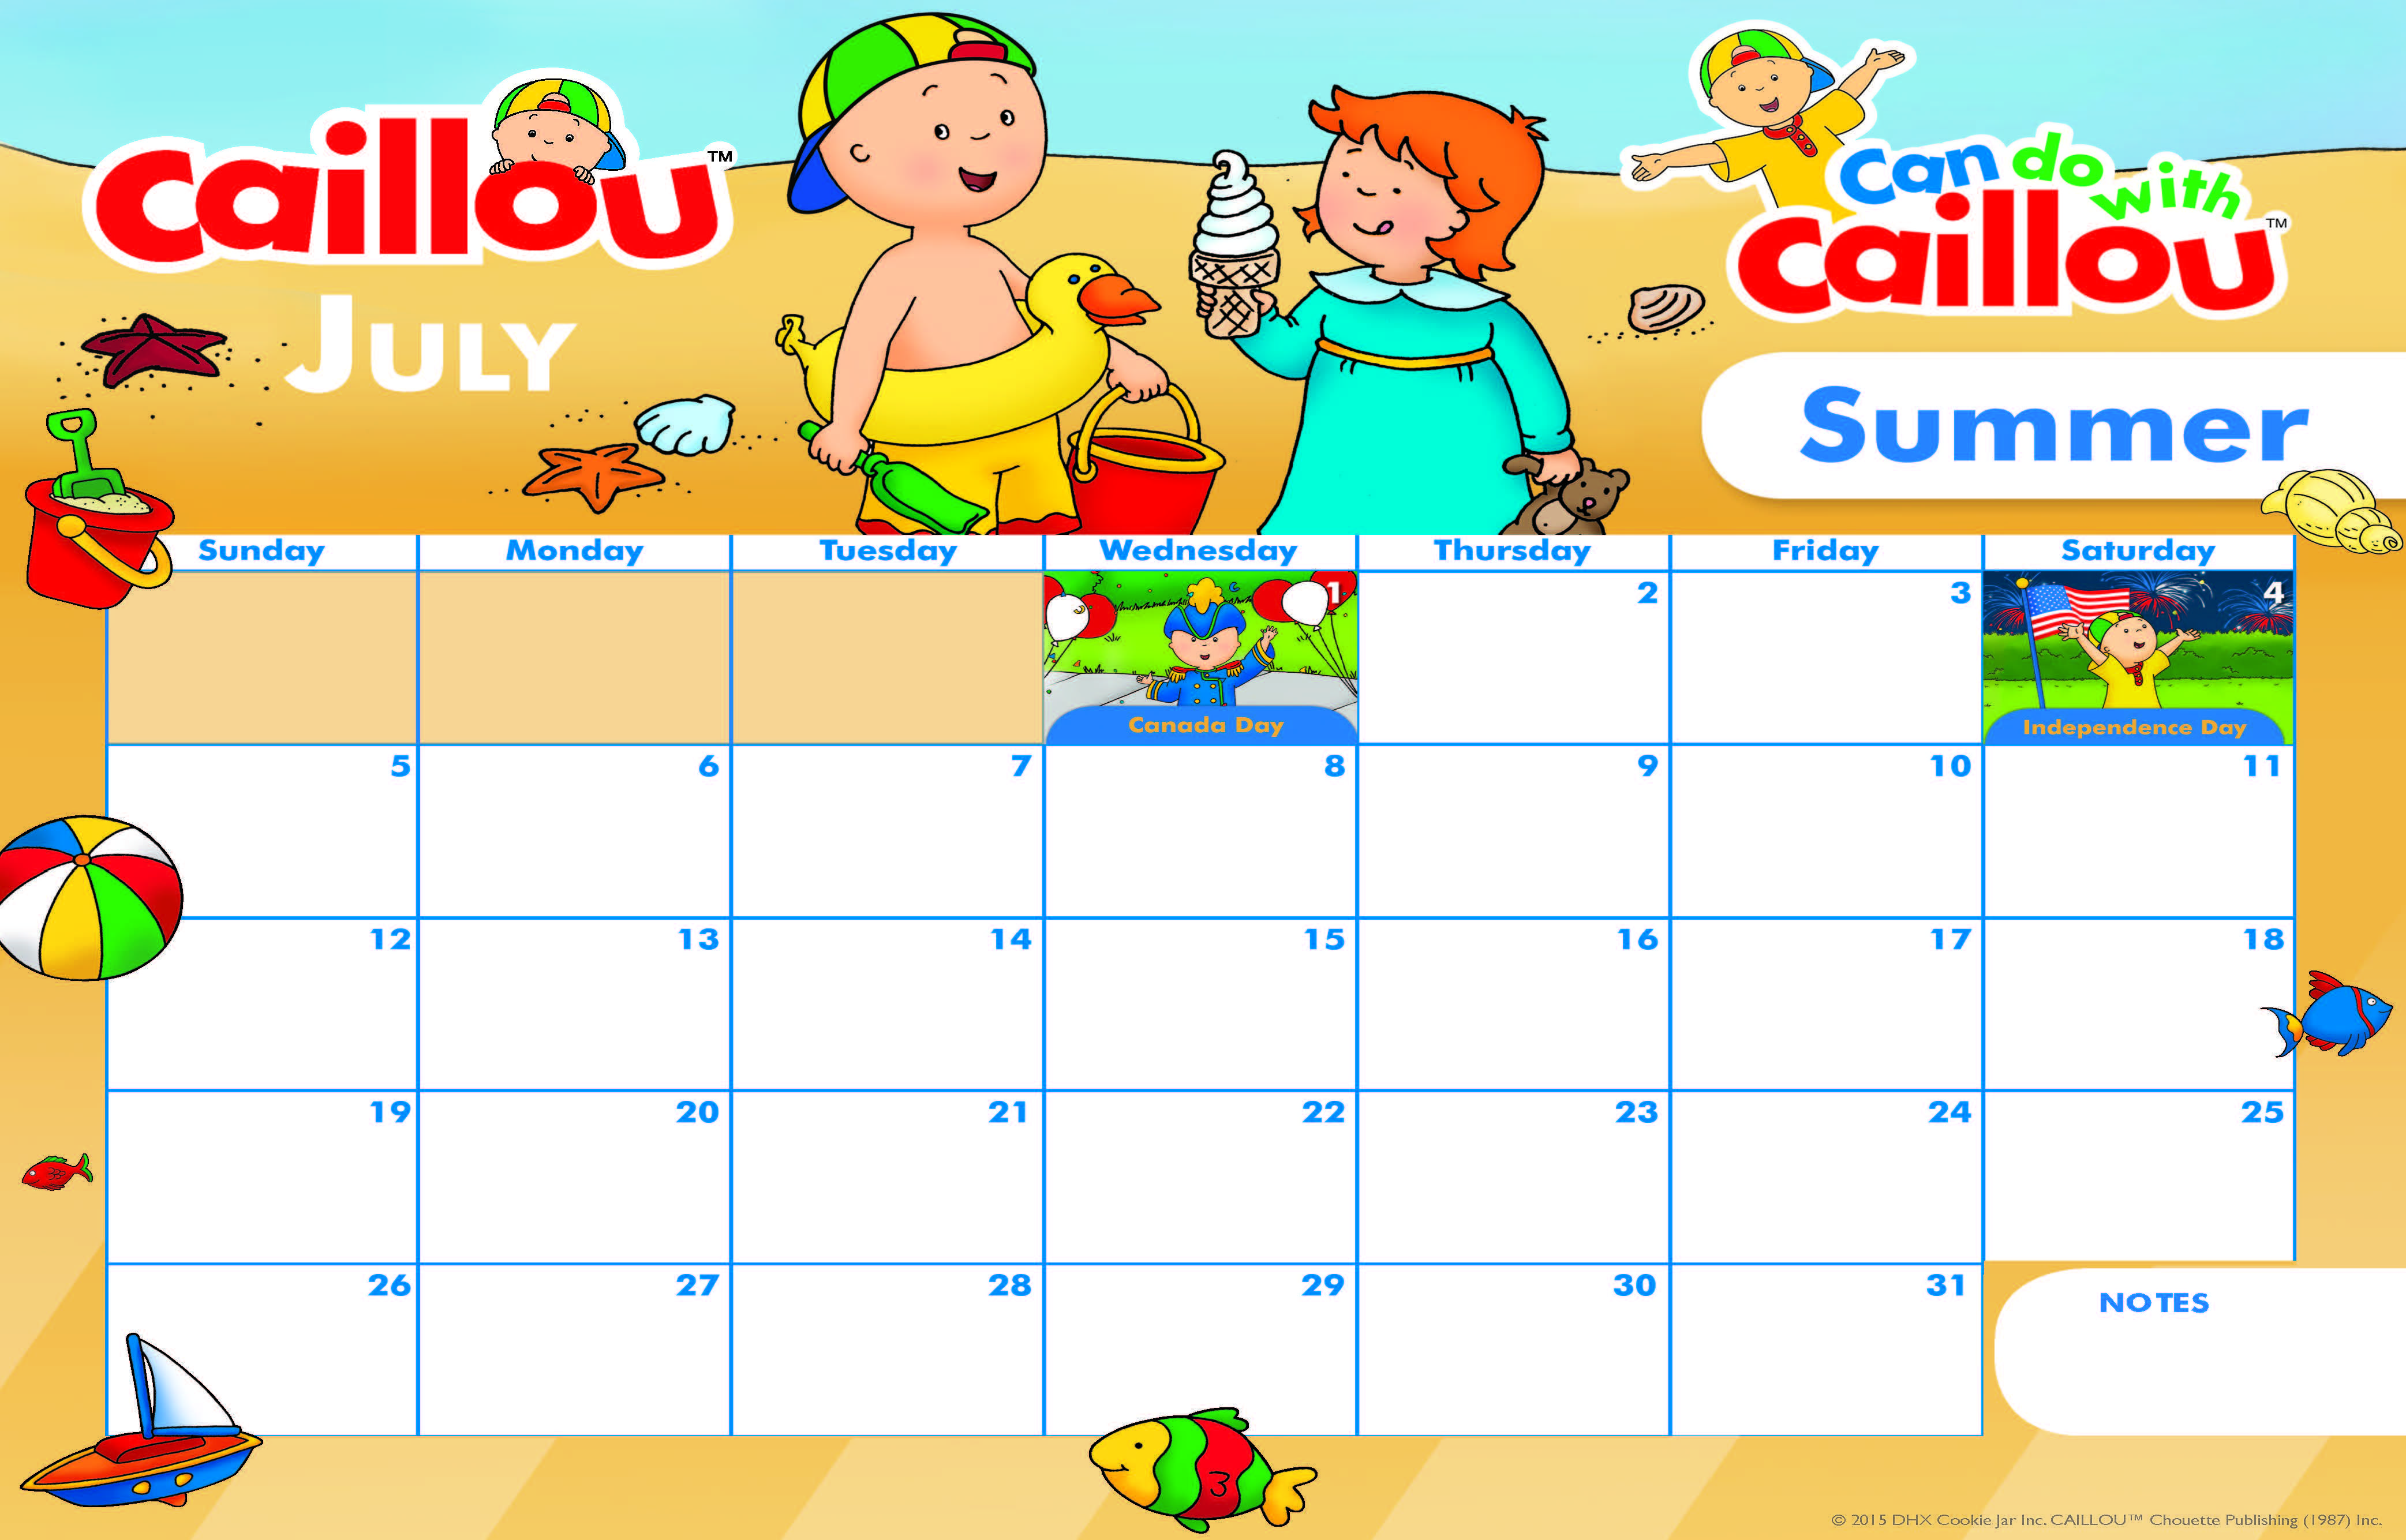 Get Ready To Plan Your Summer Fun With This Adorable Printable Caillou Calendar We Re